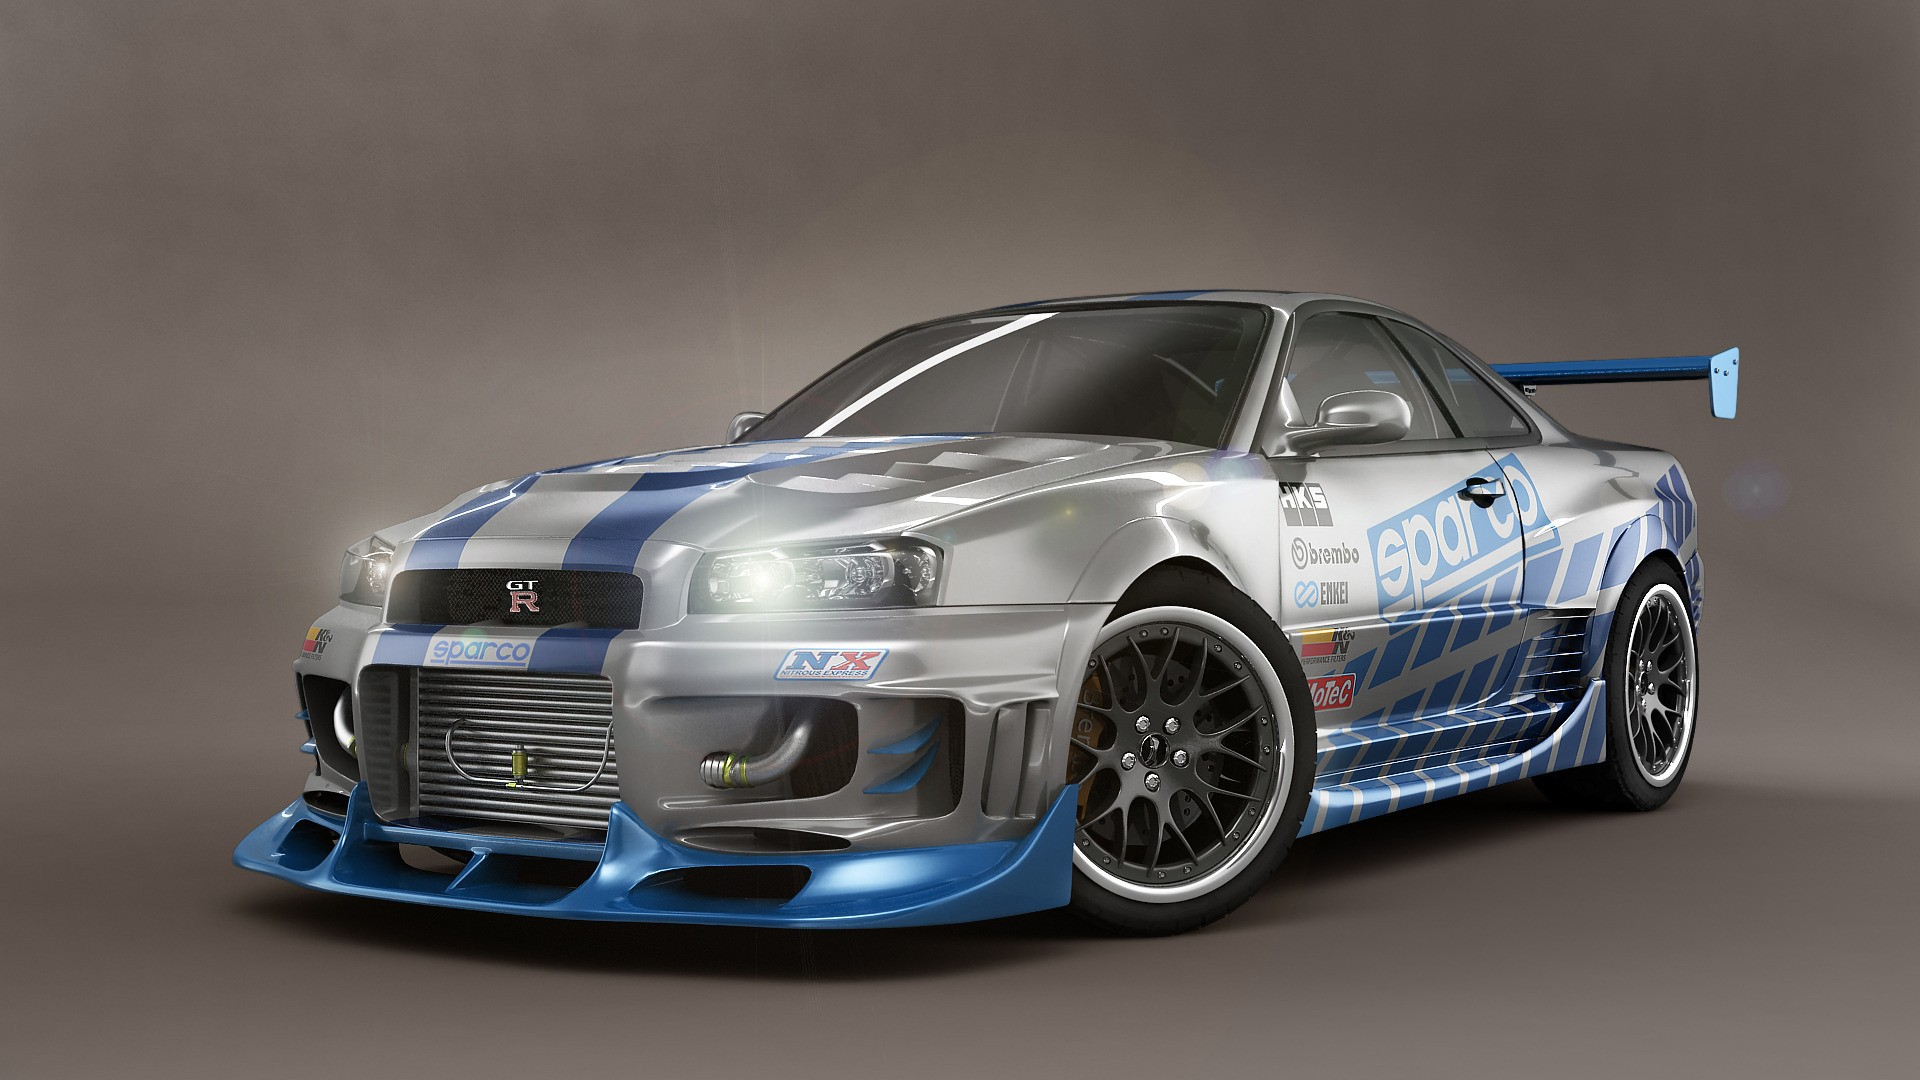 Fast Cars Wallpaper 2013 Images amp Pictures   Becuo 1920x1080